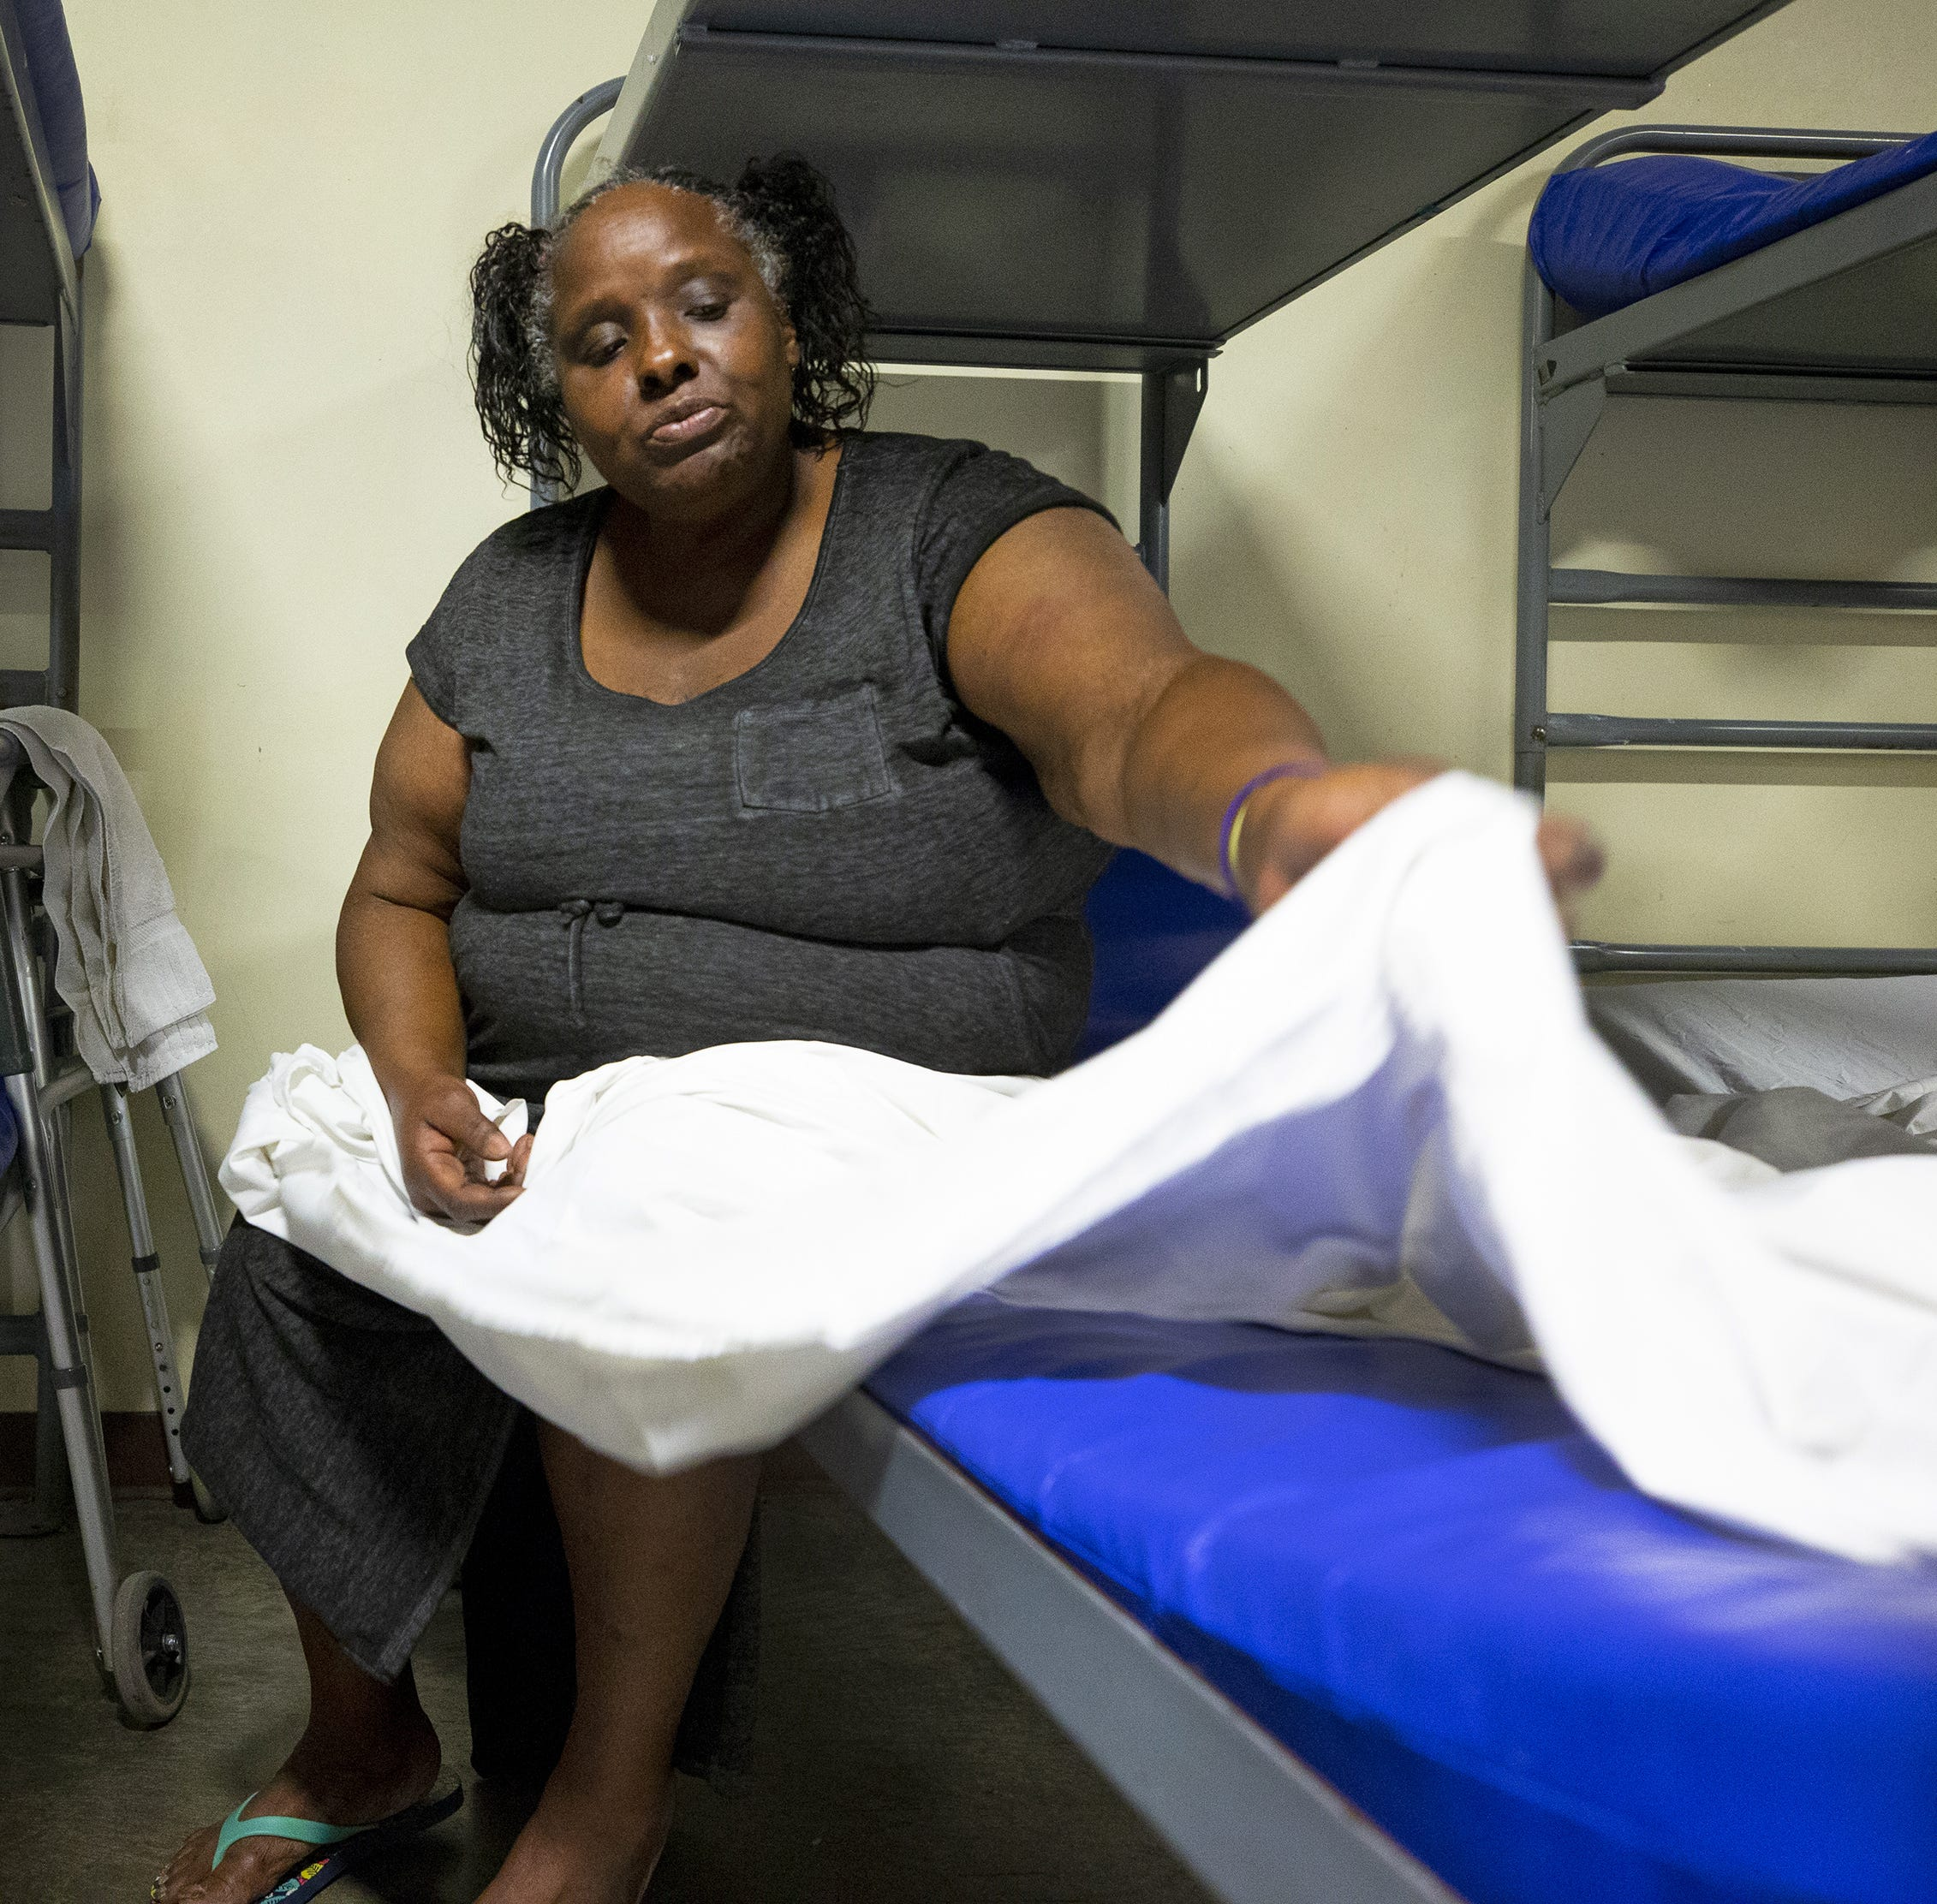 'They should have never put me out there.' Hospital left homeless woman on the street